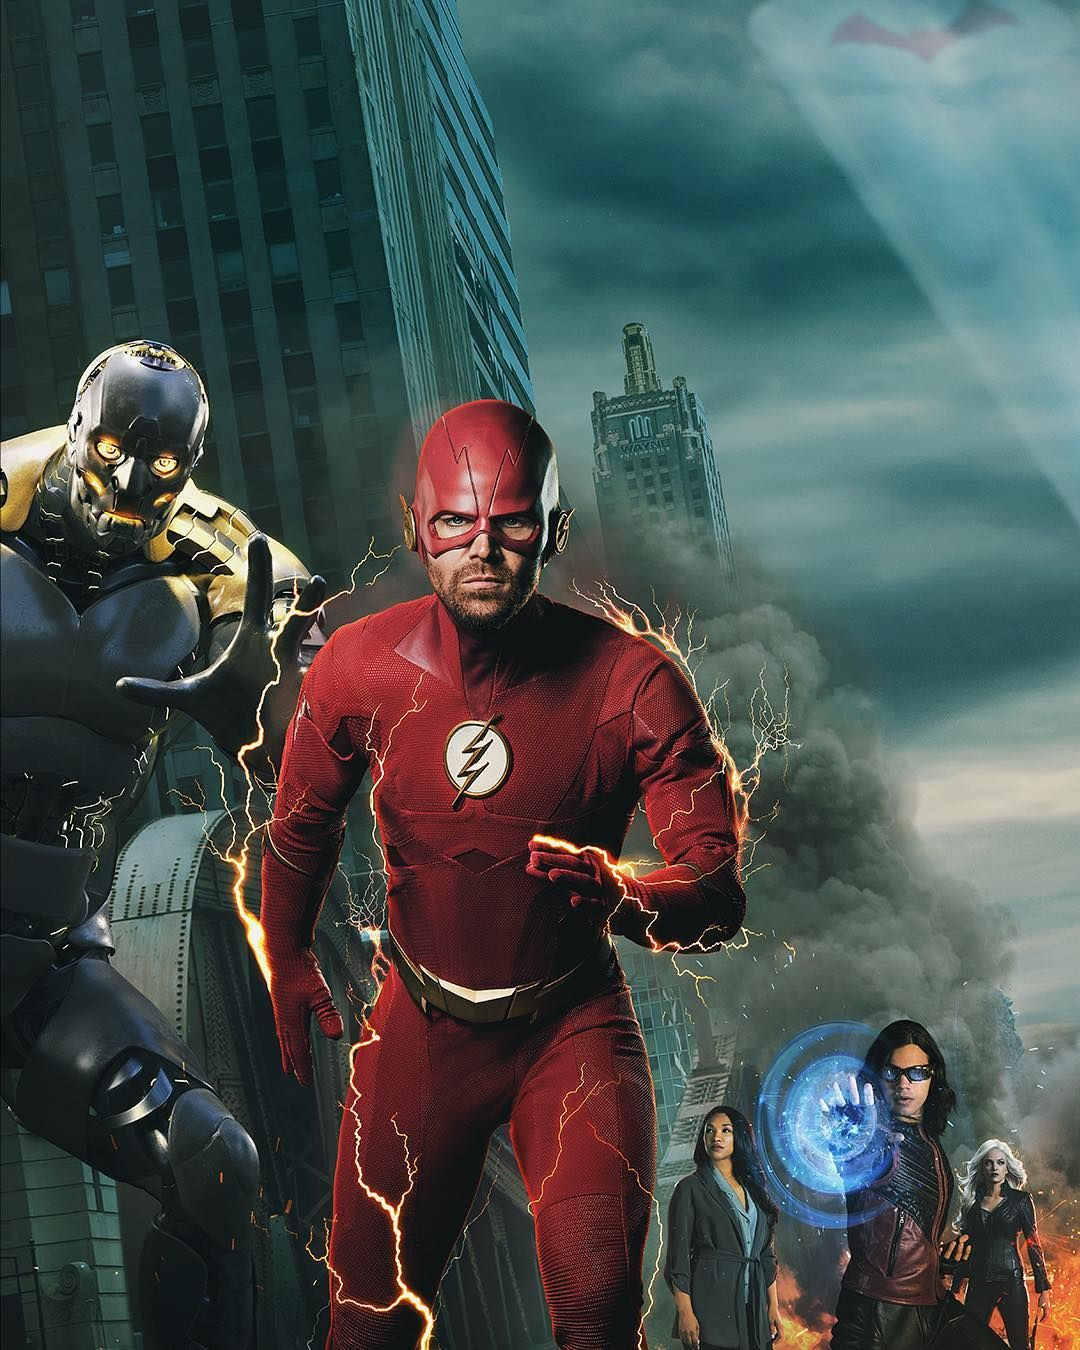 Worlds collide in Elseworlds. The 3night crossover event